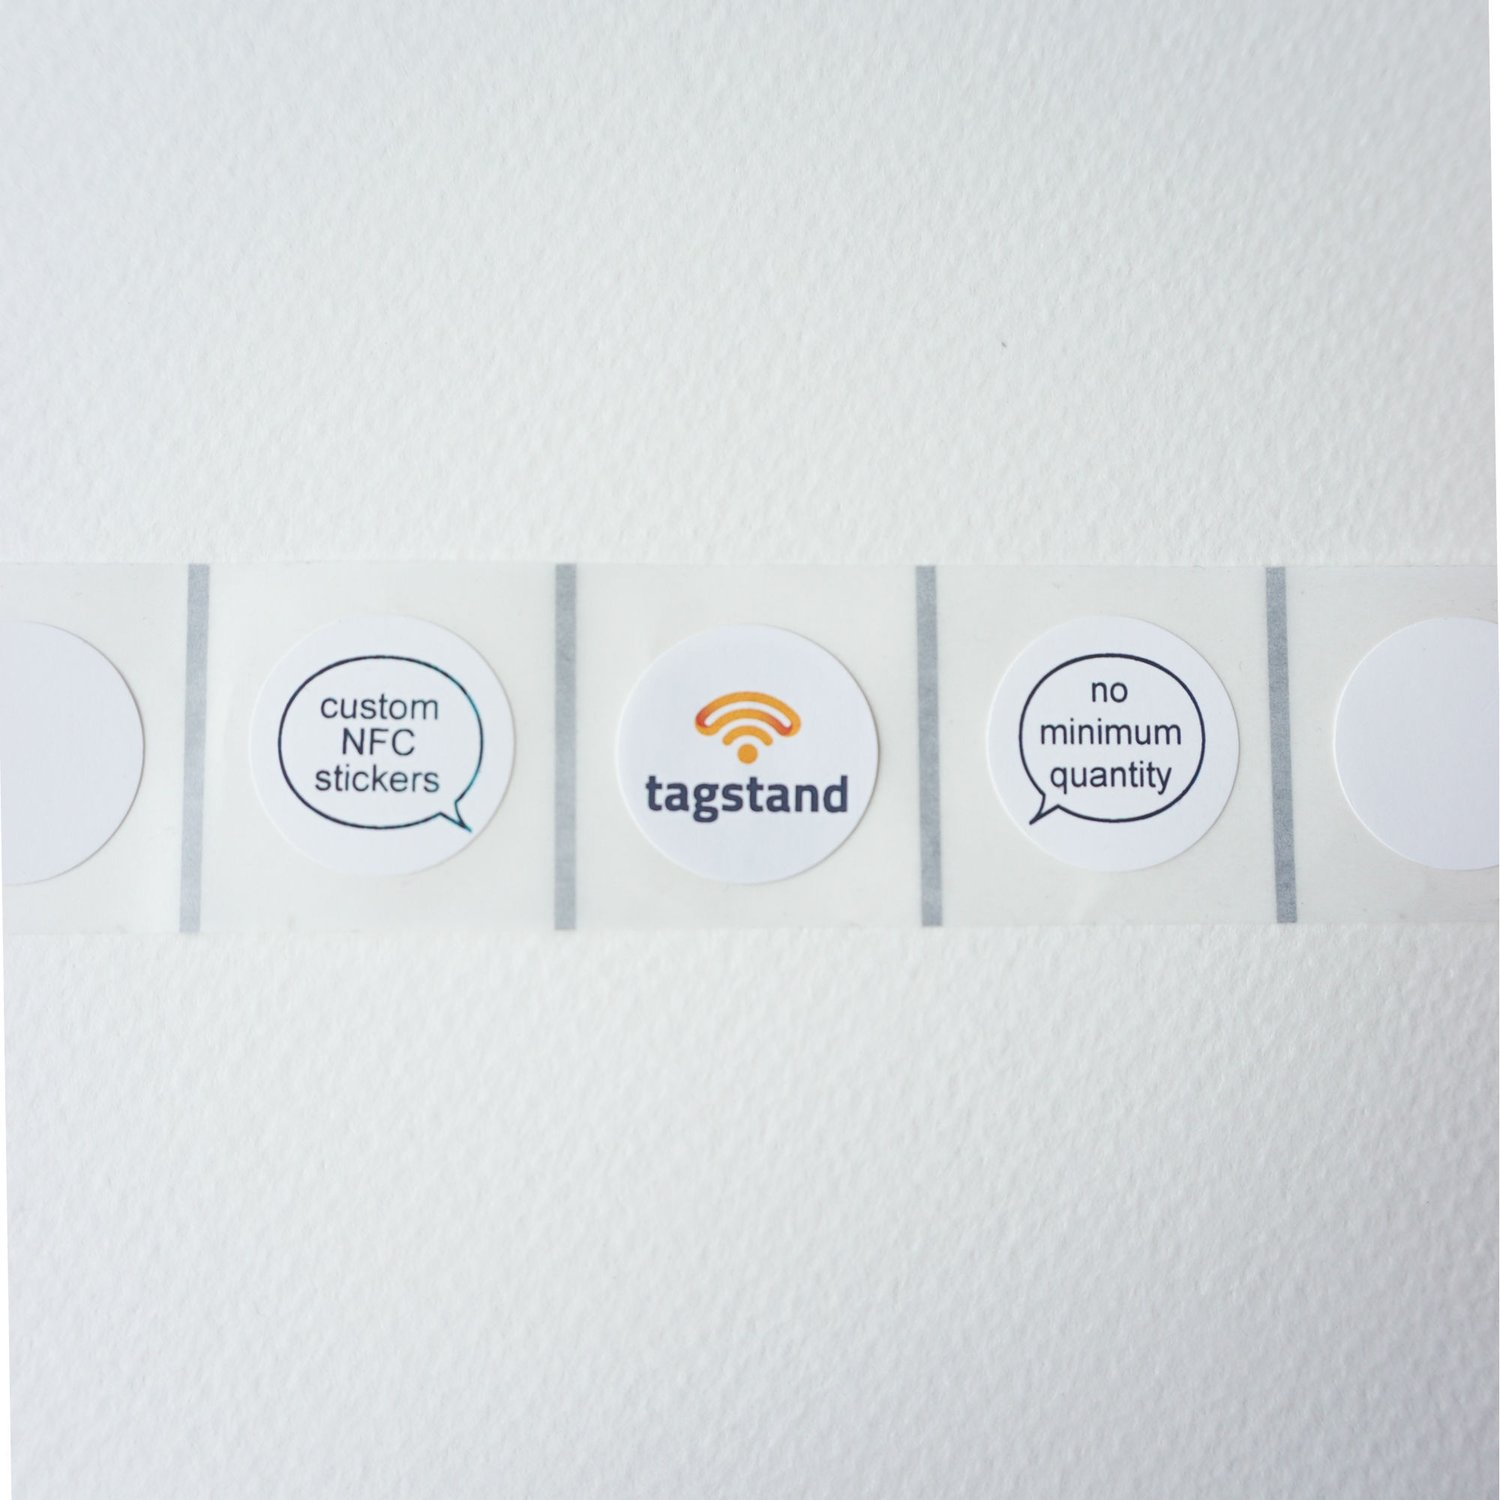 Small quantity custom NFC tags are here! — Tagstand